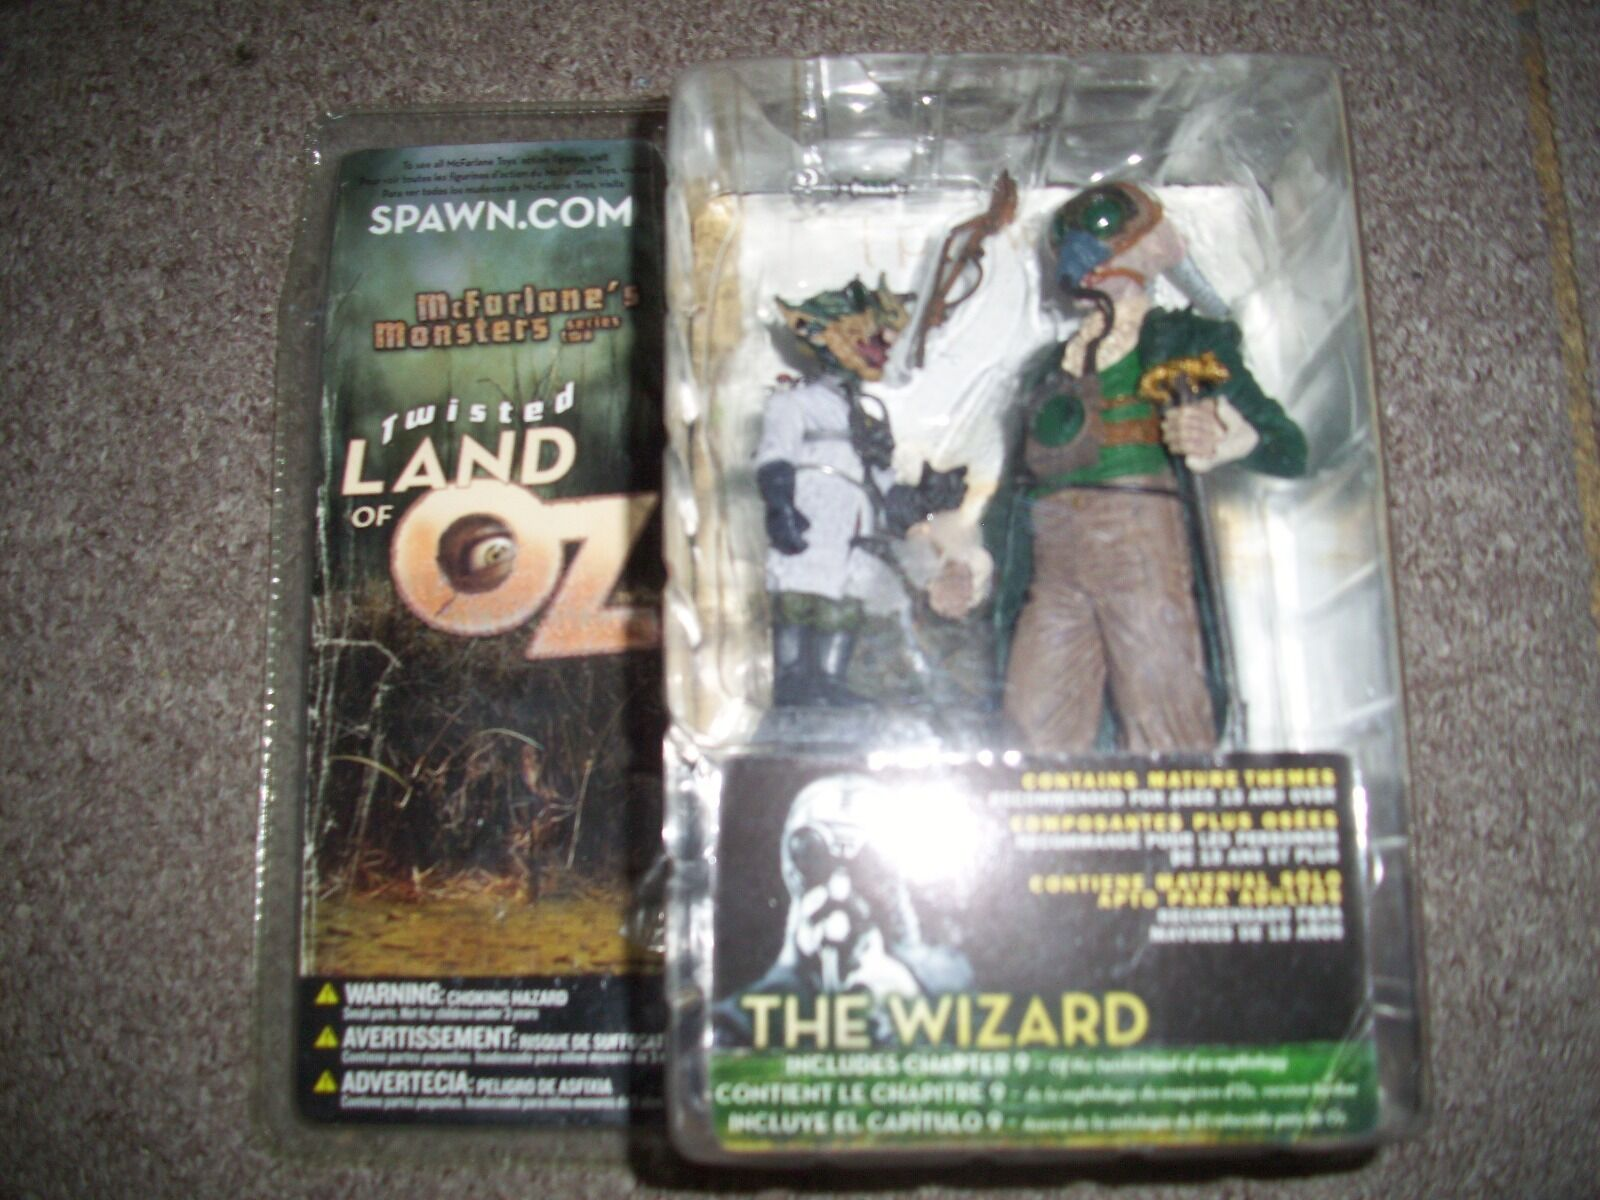 Mcfarlane twisted land of oz the wizard figure. still sealed